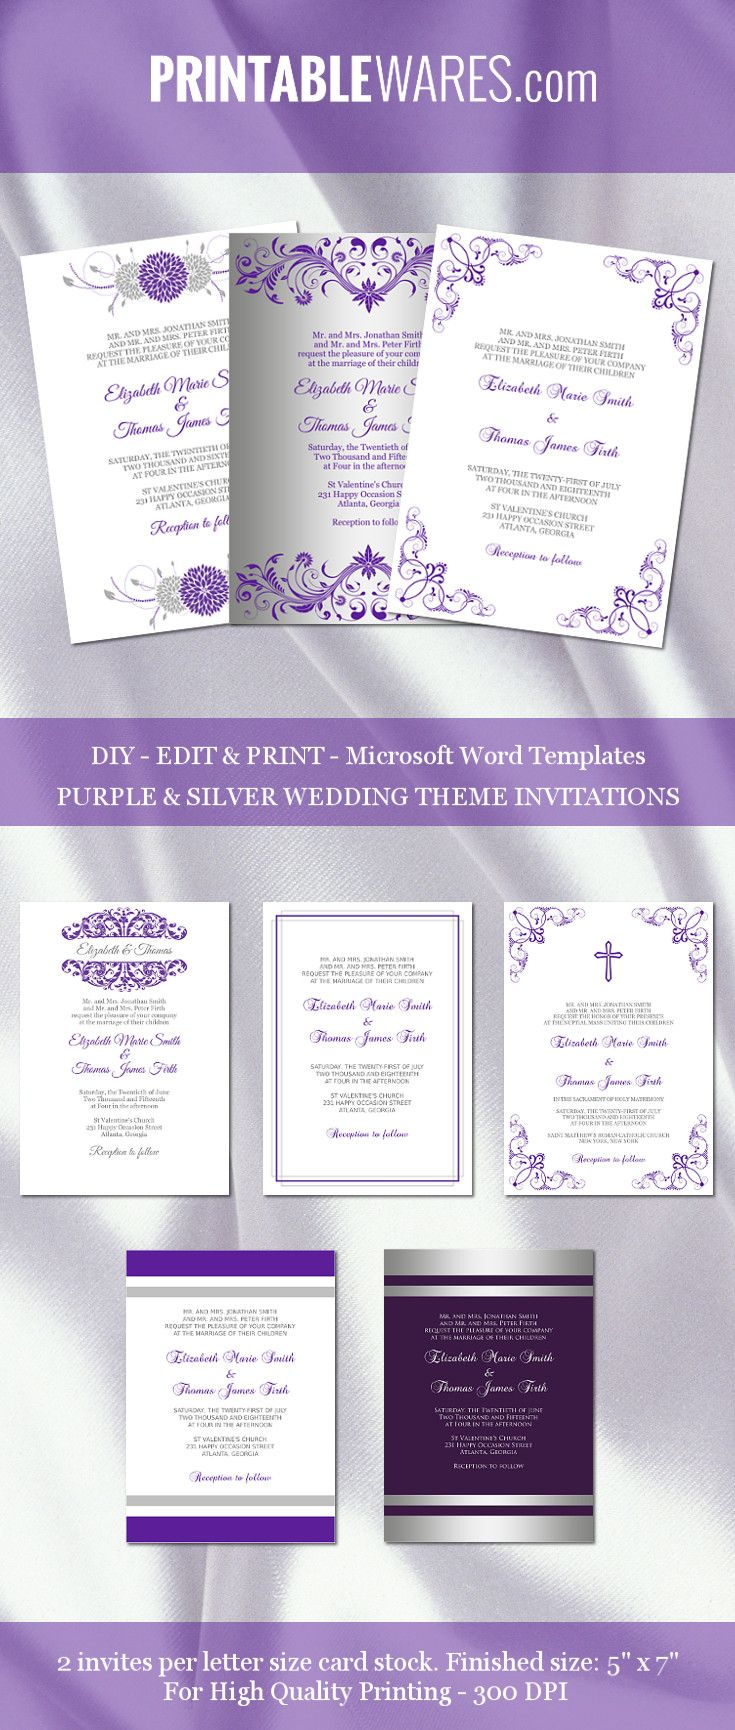 Purple And Silver Wedding Invitation Templates For Microsoft Word